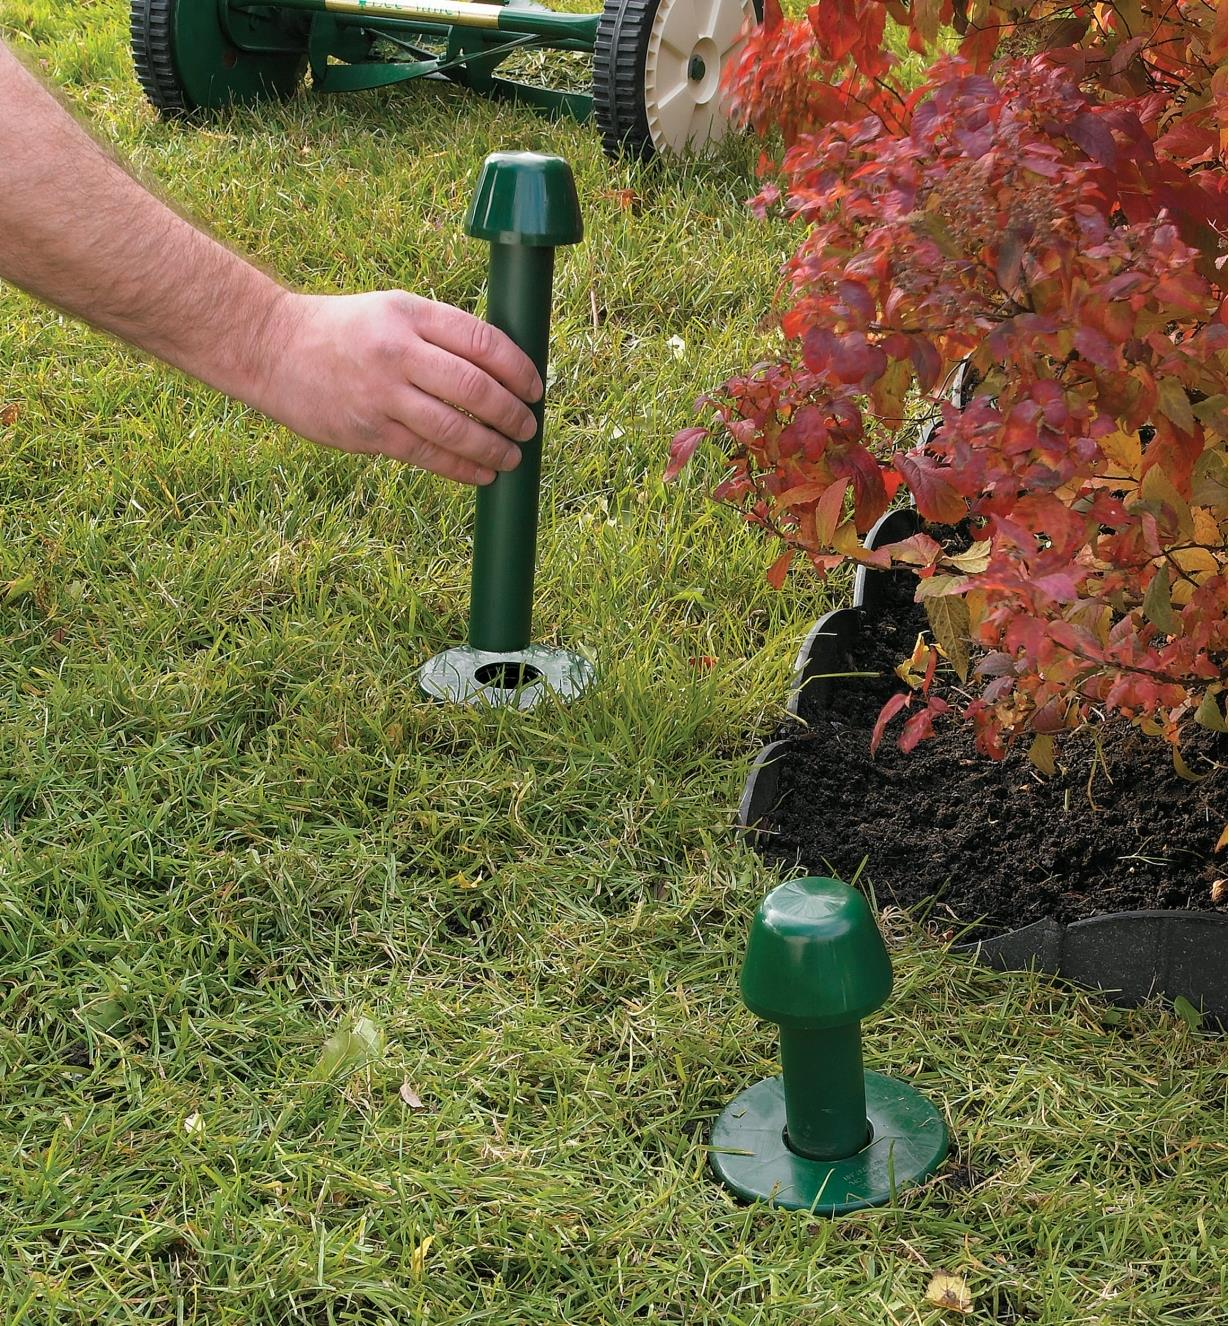 Inserting the hose guide into the base installed in a lawn